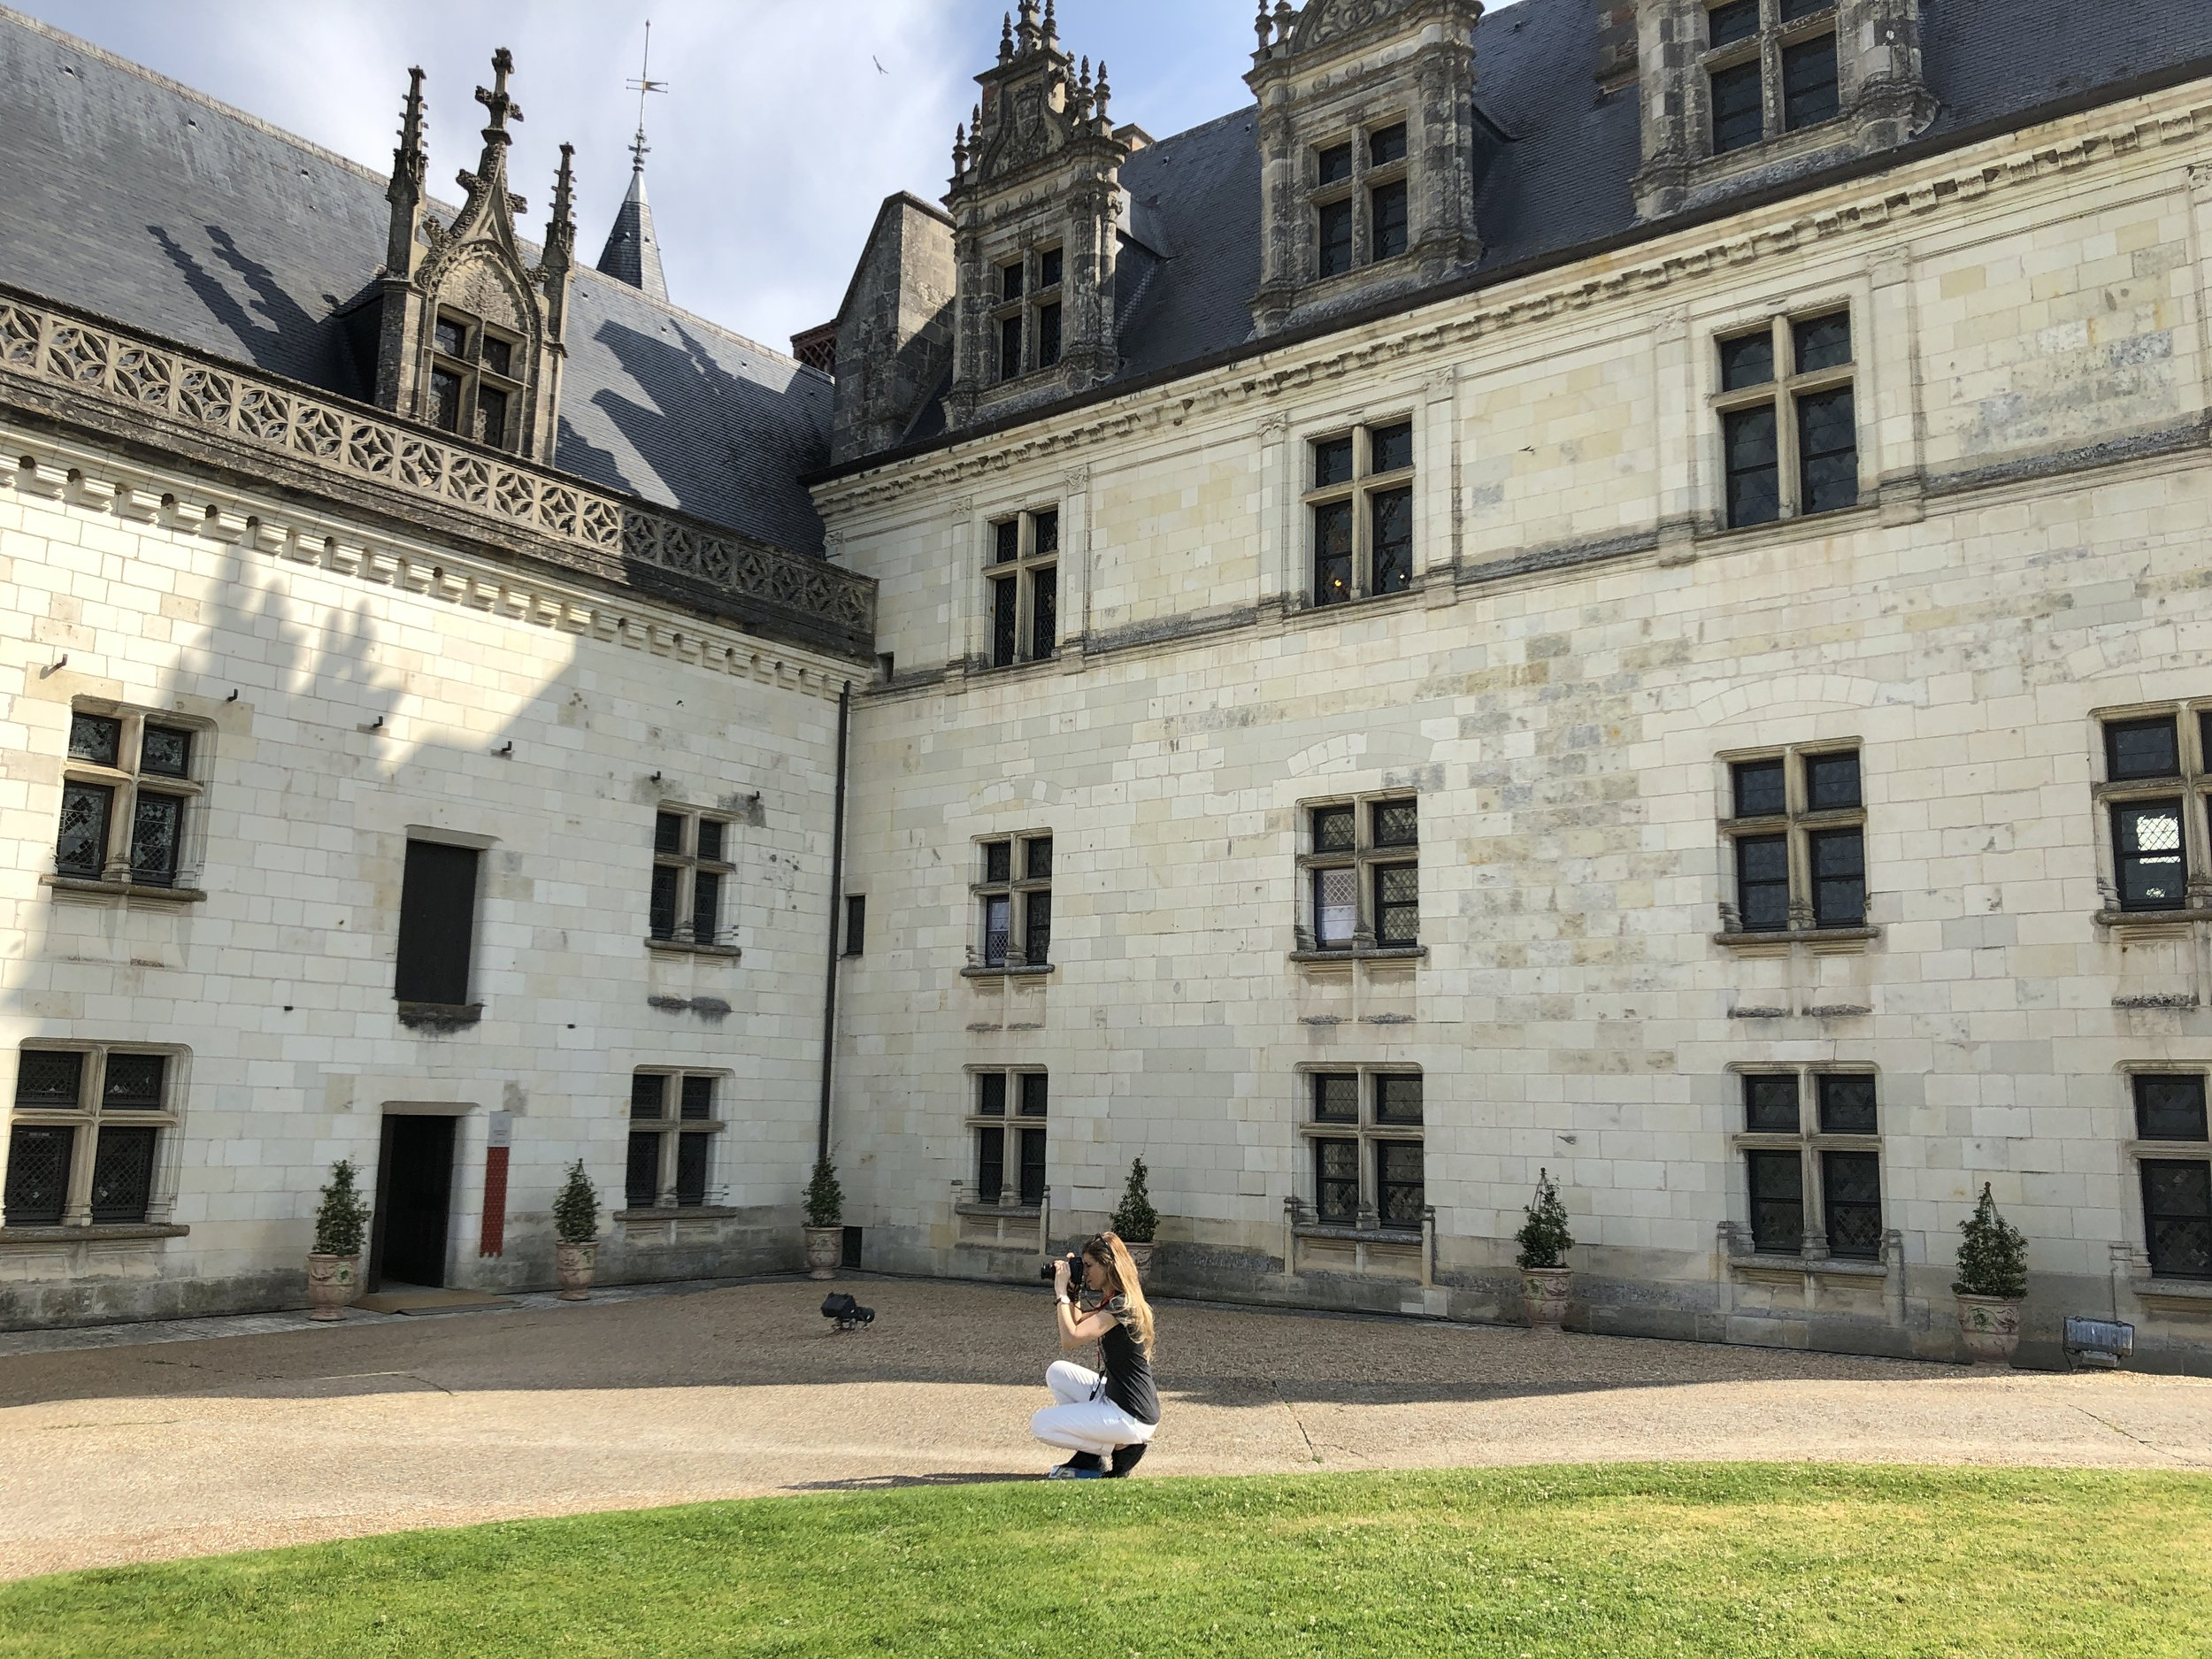 Preparing for the photoshoot at the Loire Valle, France.